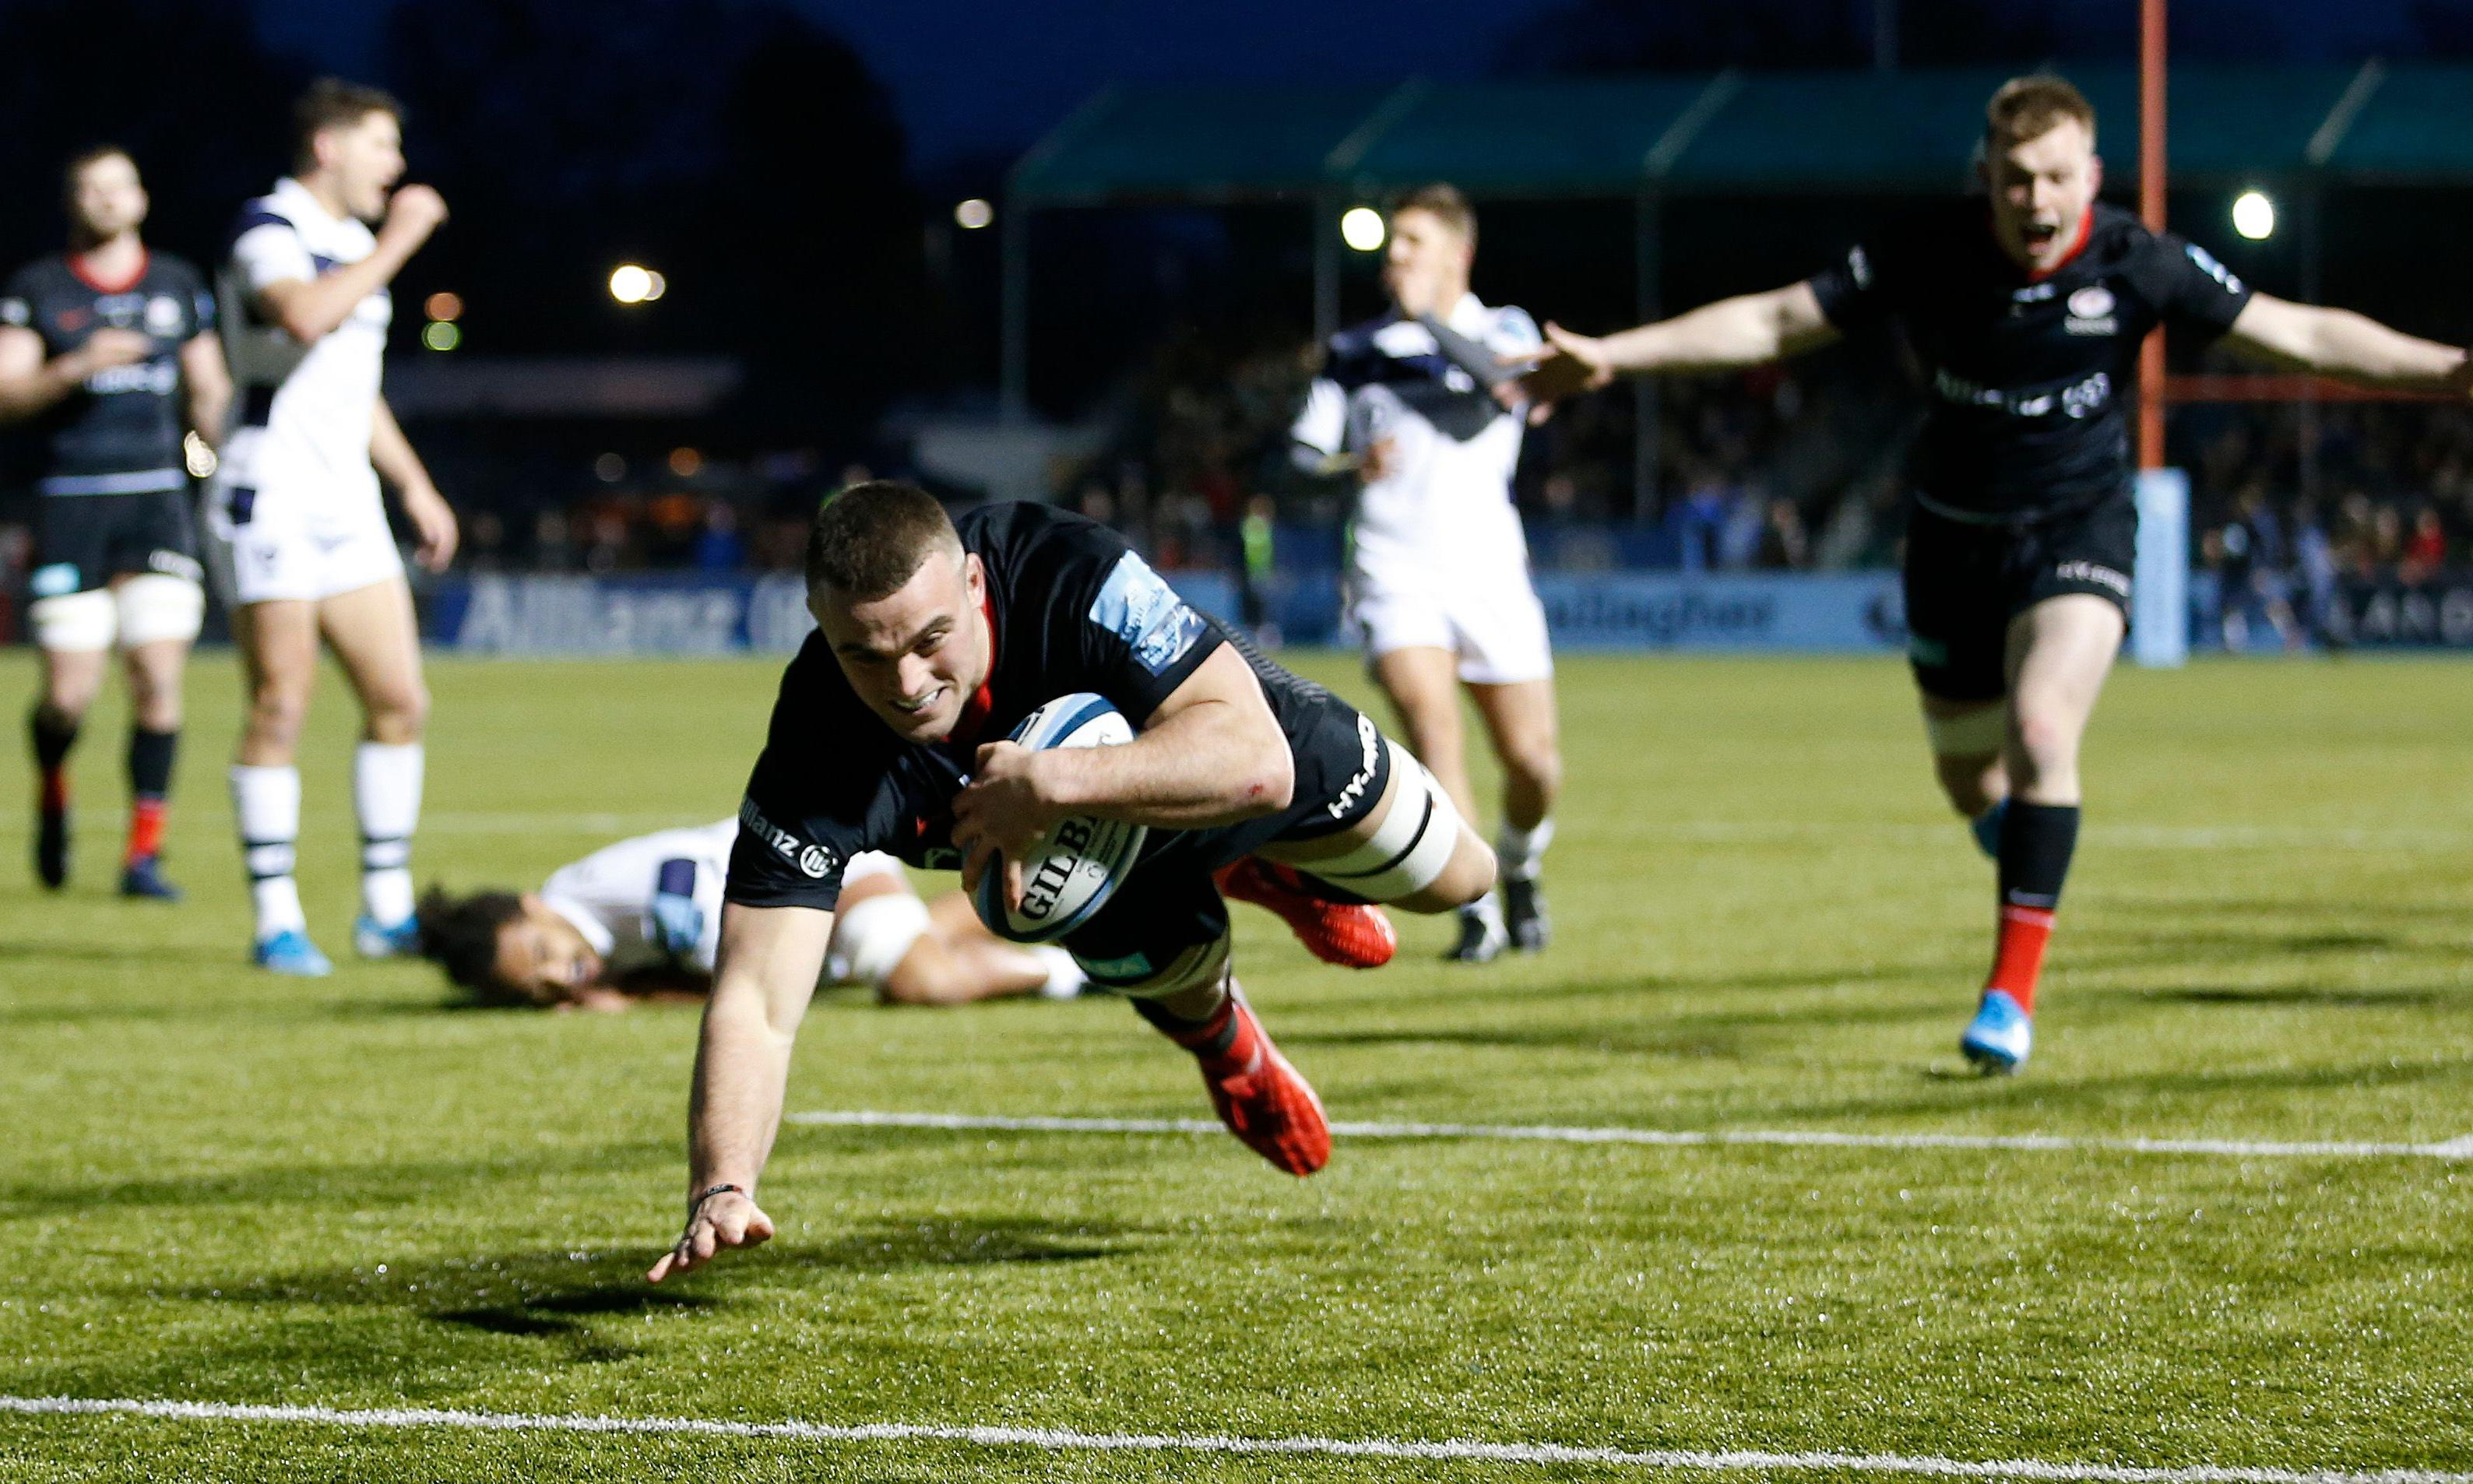 Saracens show their survival instincts by crushing Bristol